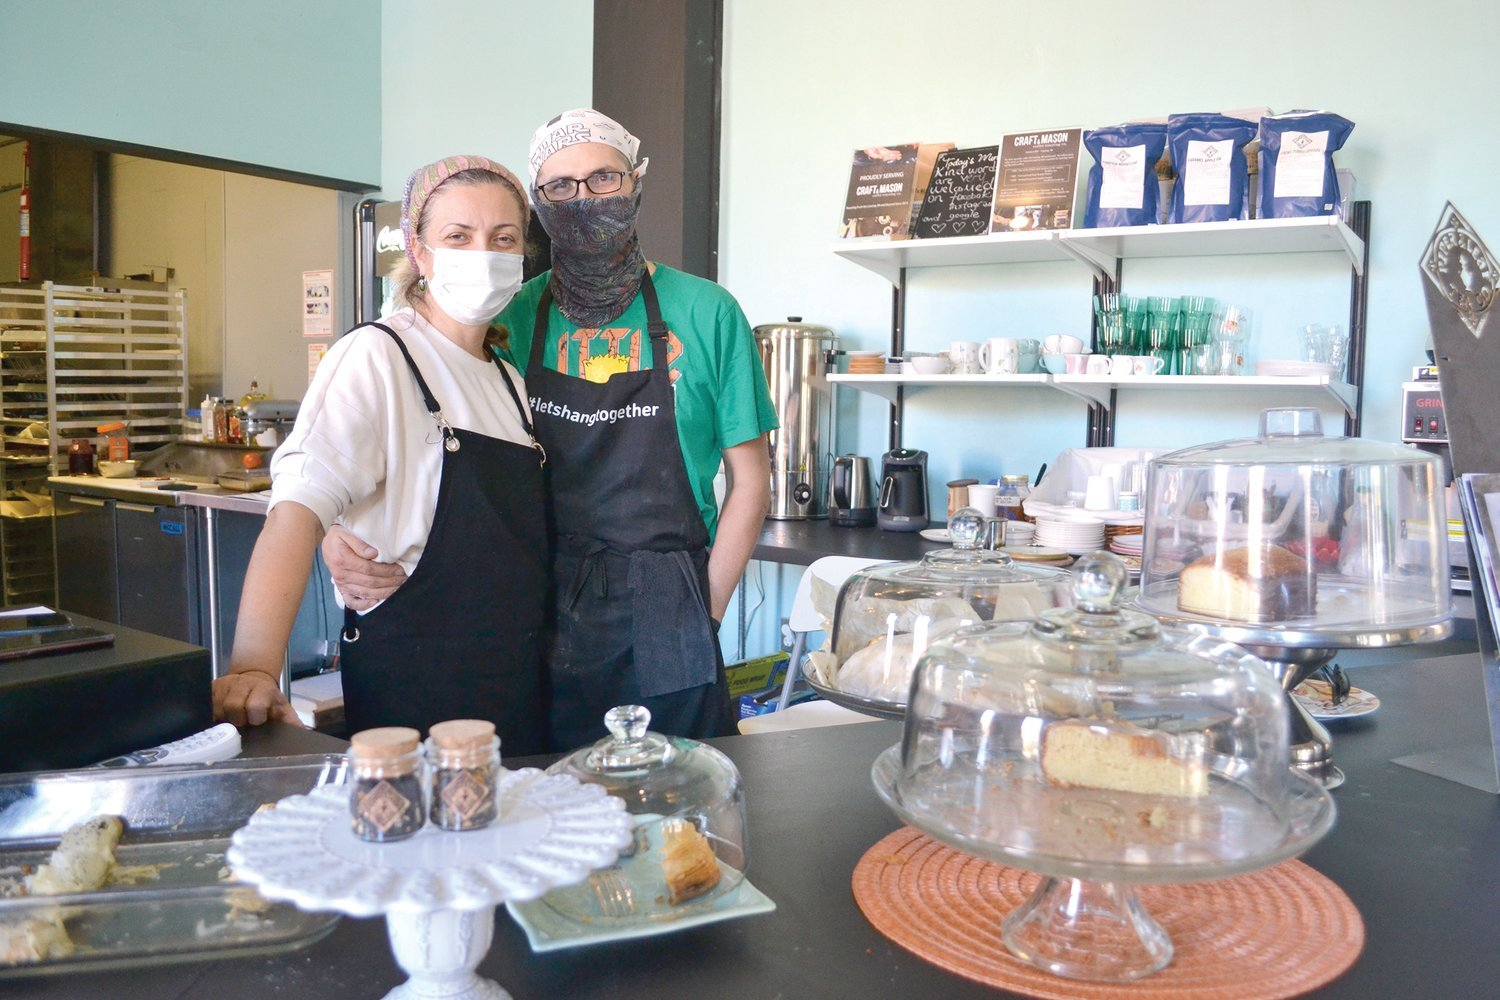 Burcay (left) and Aybars Gunguler, owners of Social Sloth Cafe & Bakery.